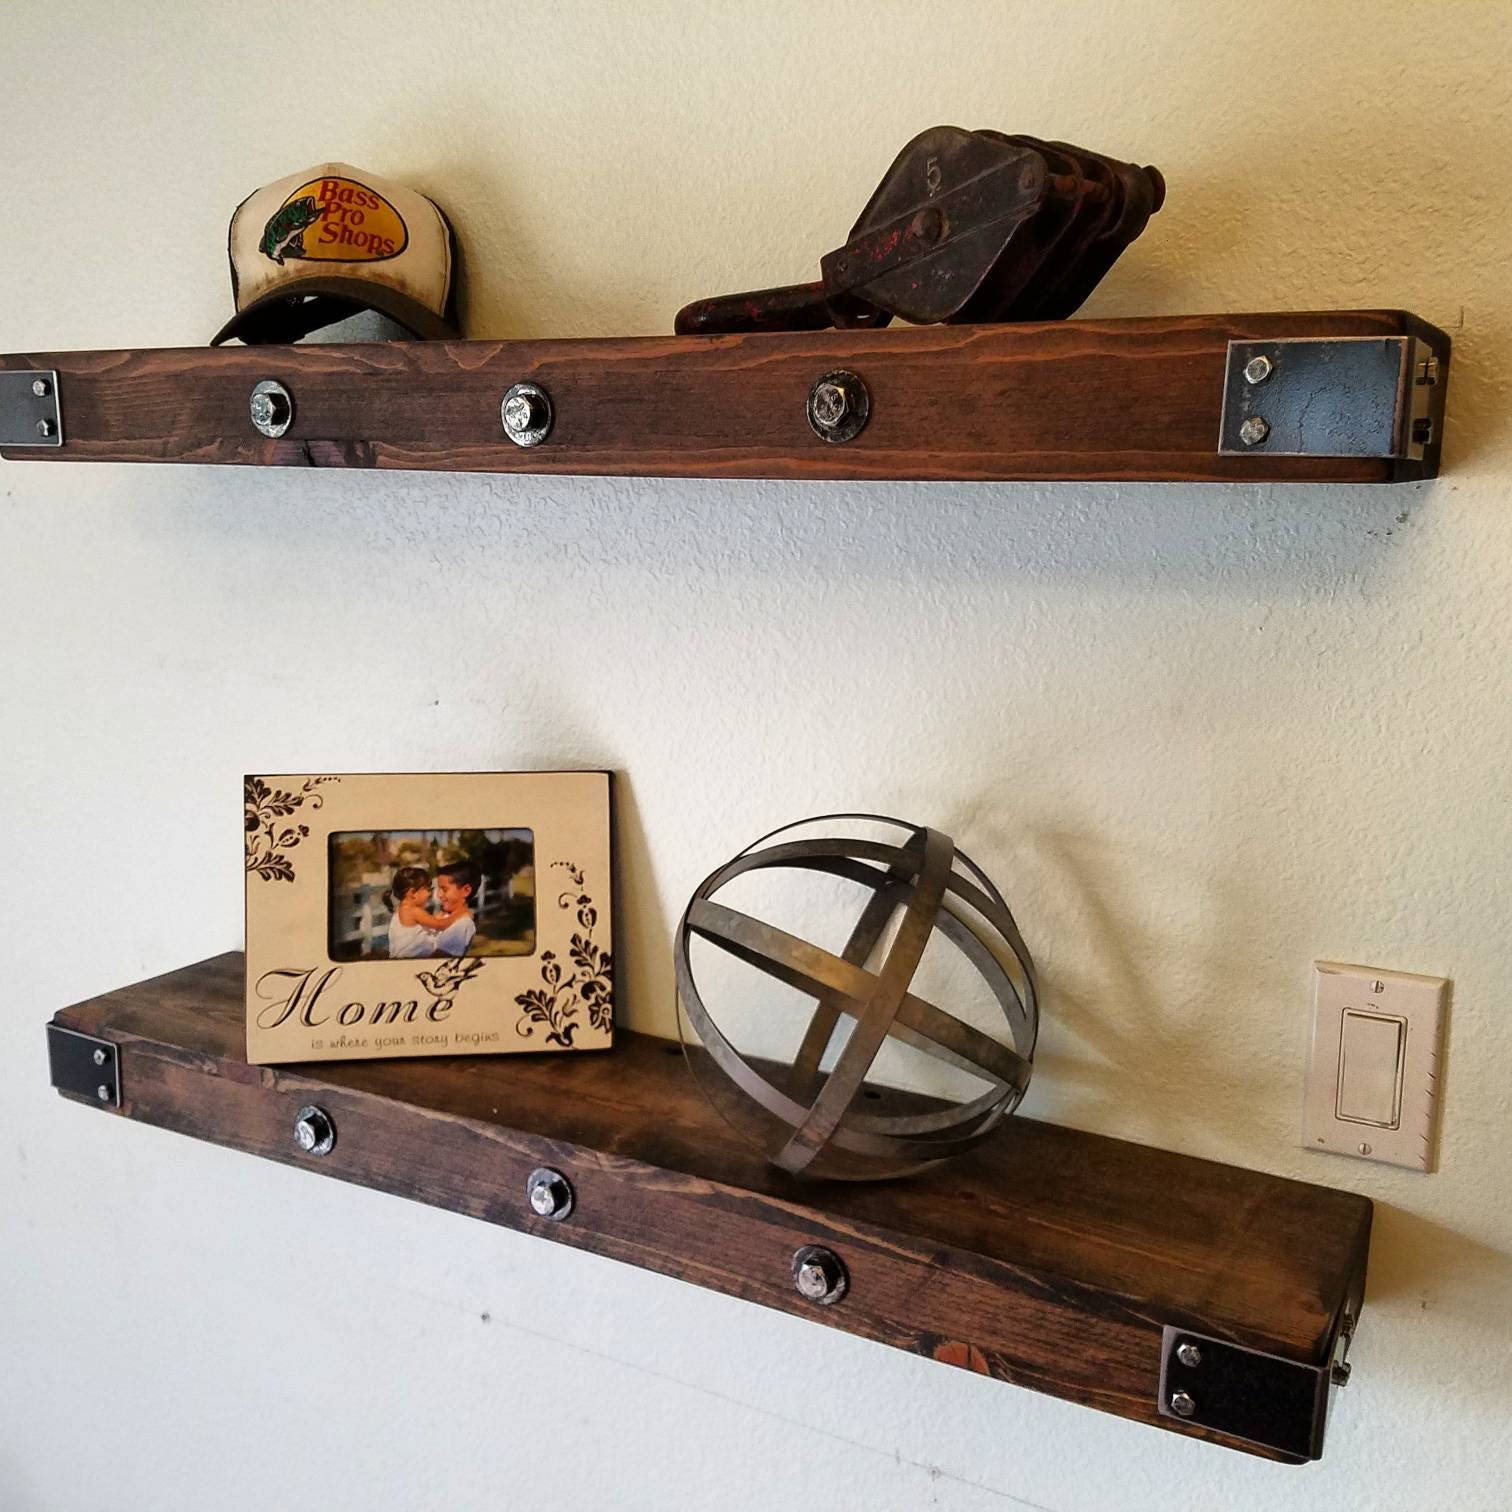 Fantastic Handmade Rustic And Reclaimed Wooden Floating Shelves Wood Wall Shelf Mantel Storage With Steel Corner Brackets And Bolt Washer Hardware Download Free Architecture Designs Rallybritishbridgeorg